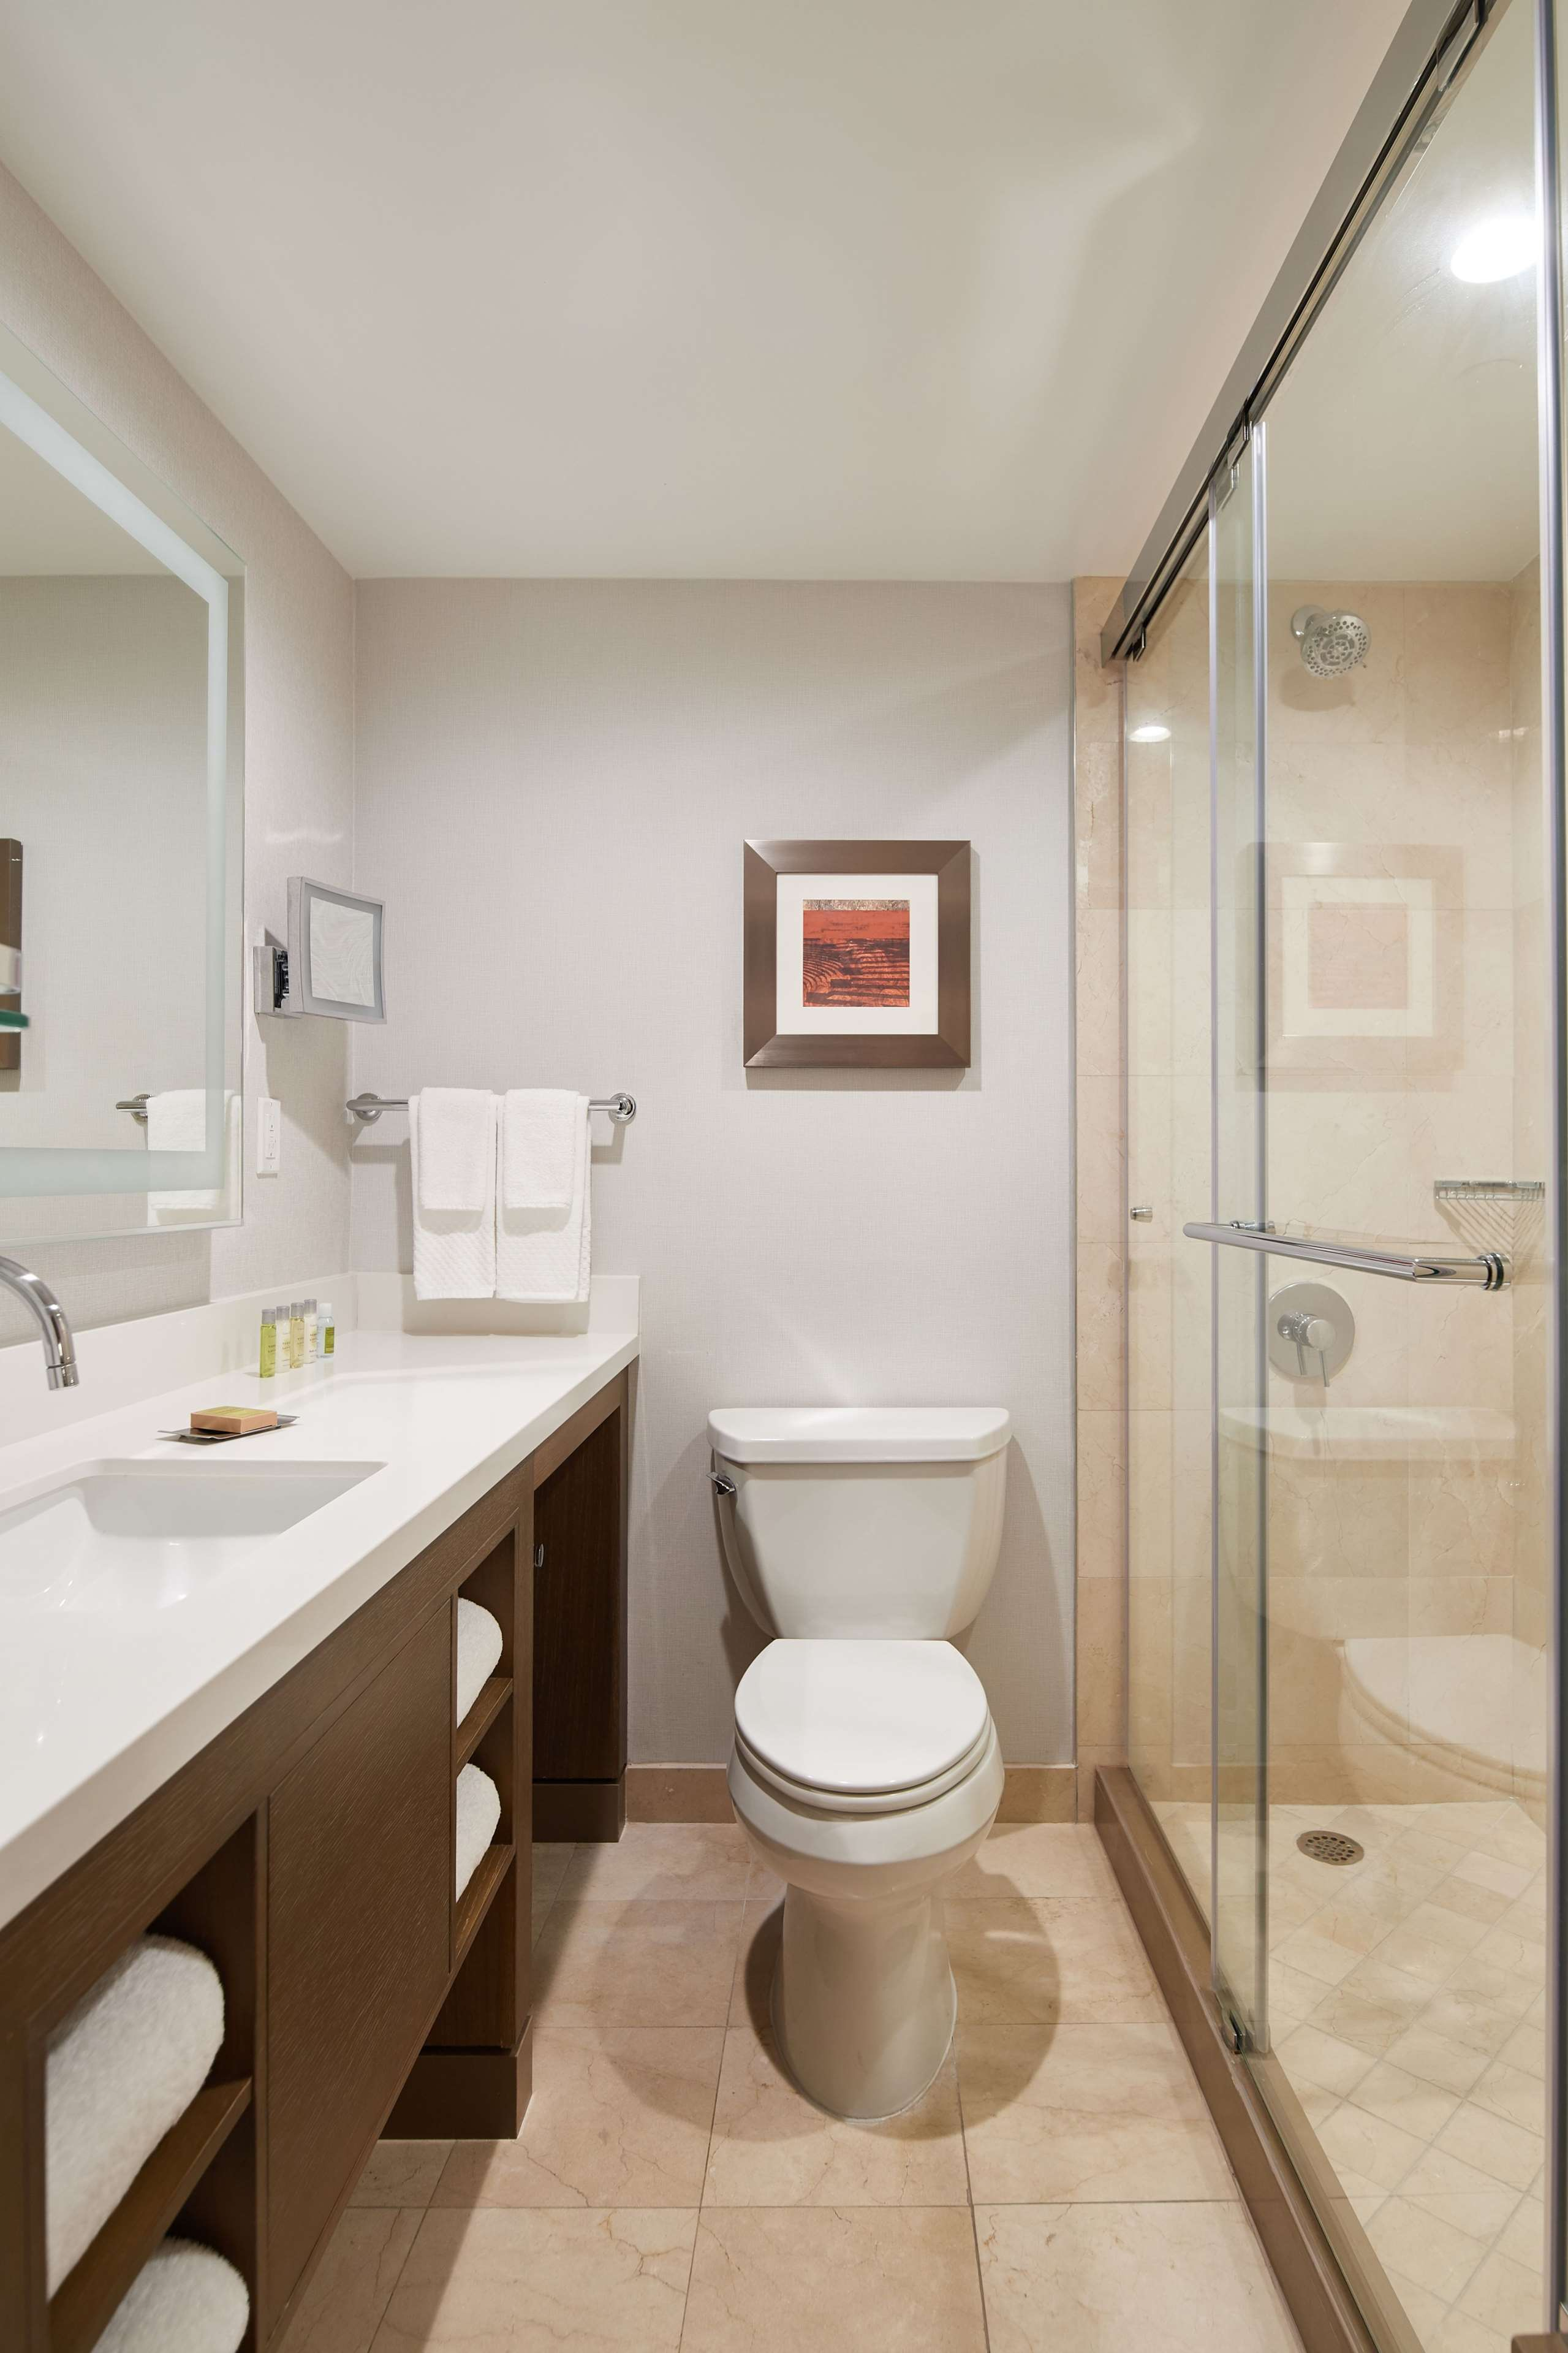 DoubleTree by Hilton Hotel Torrance - South Bay image 32